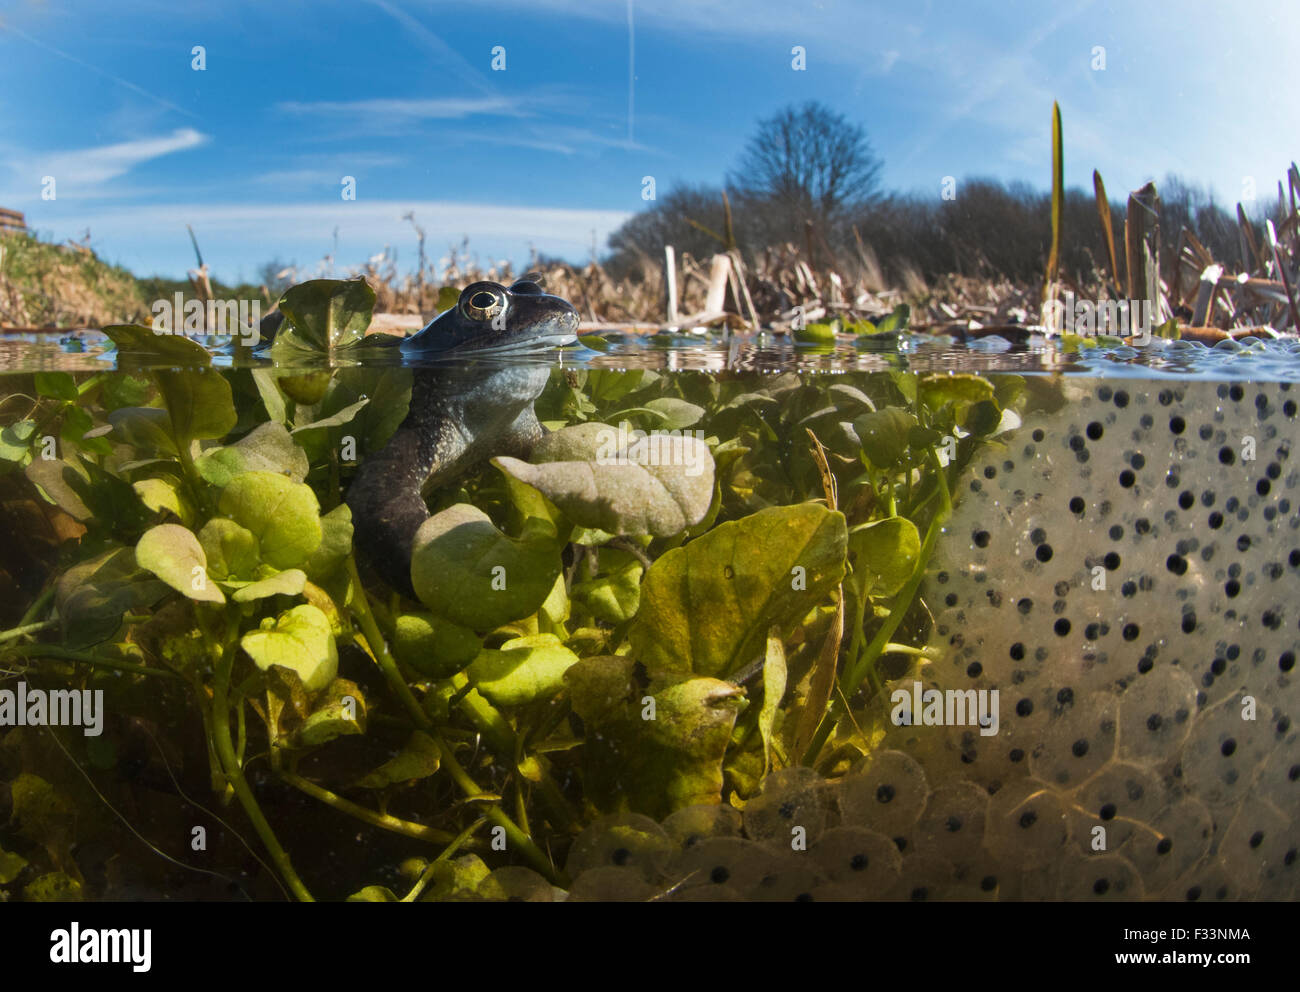 Common Frogs Rana temporaria and spawn in pond  North Norfolk March - Stock Image